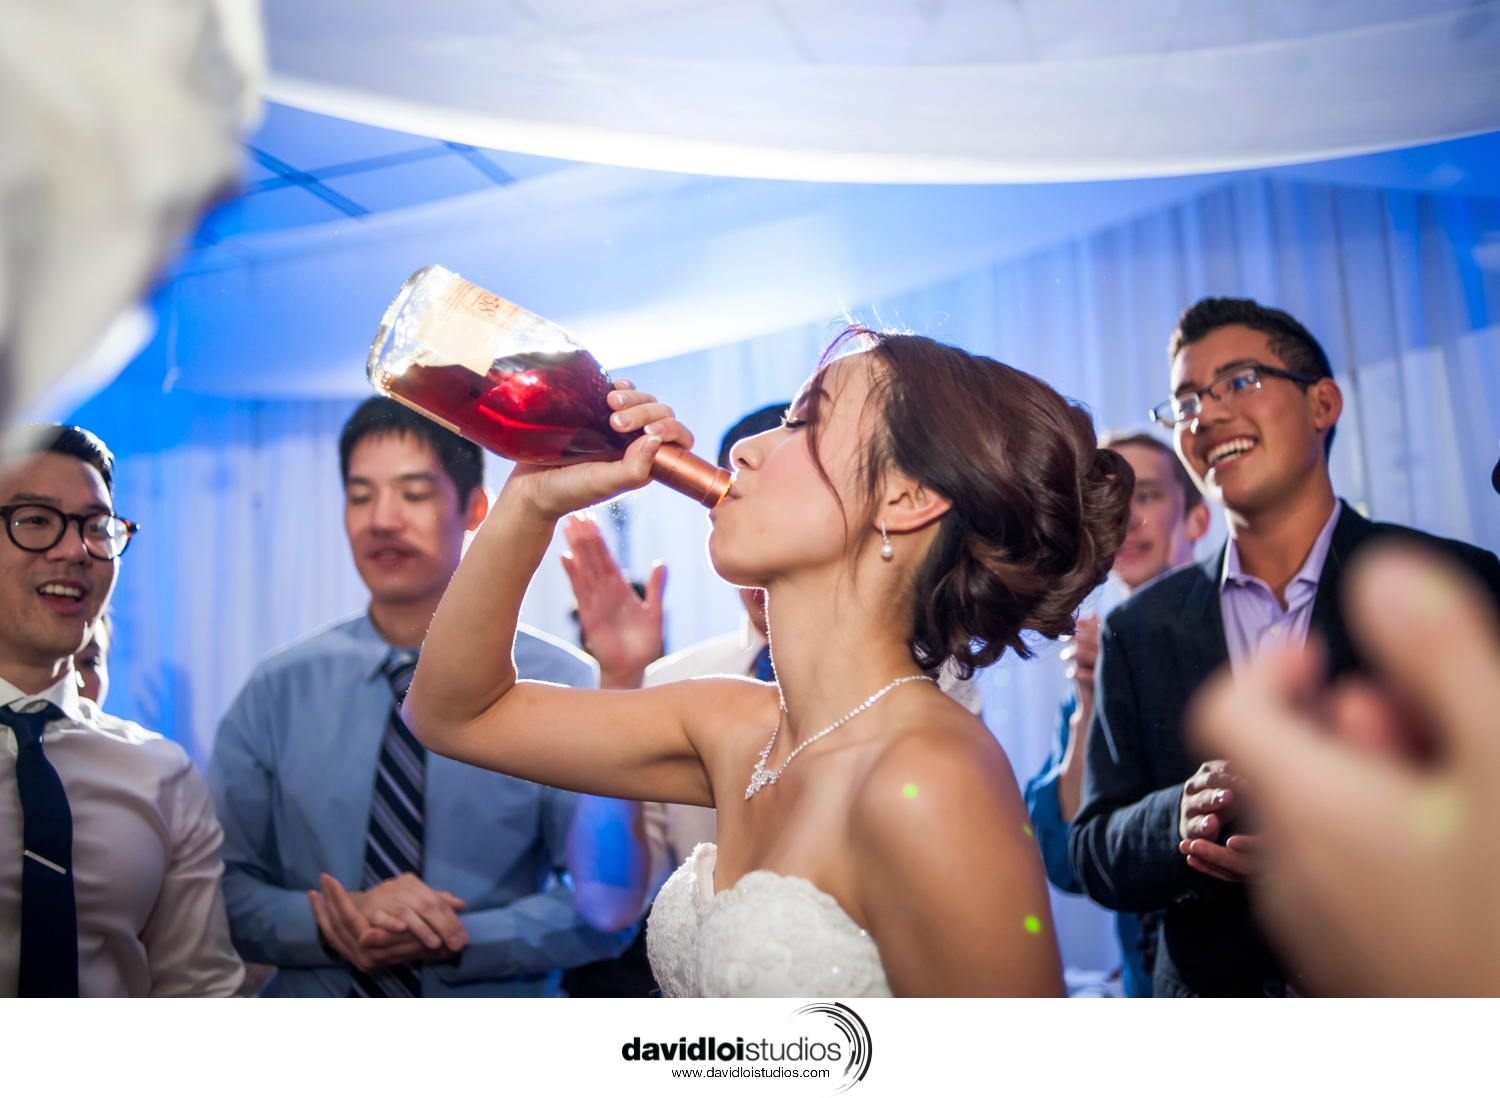 Kowloon Wedding Arlington TX-41.jpg